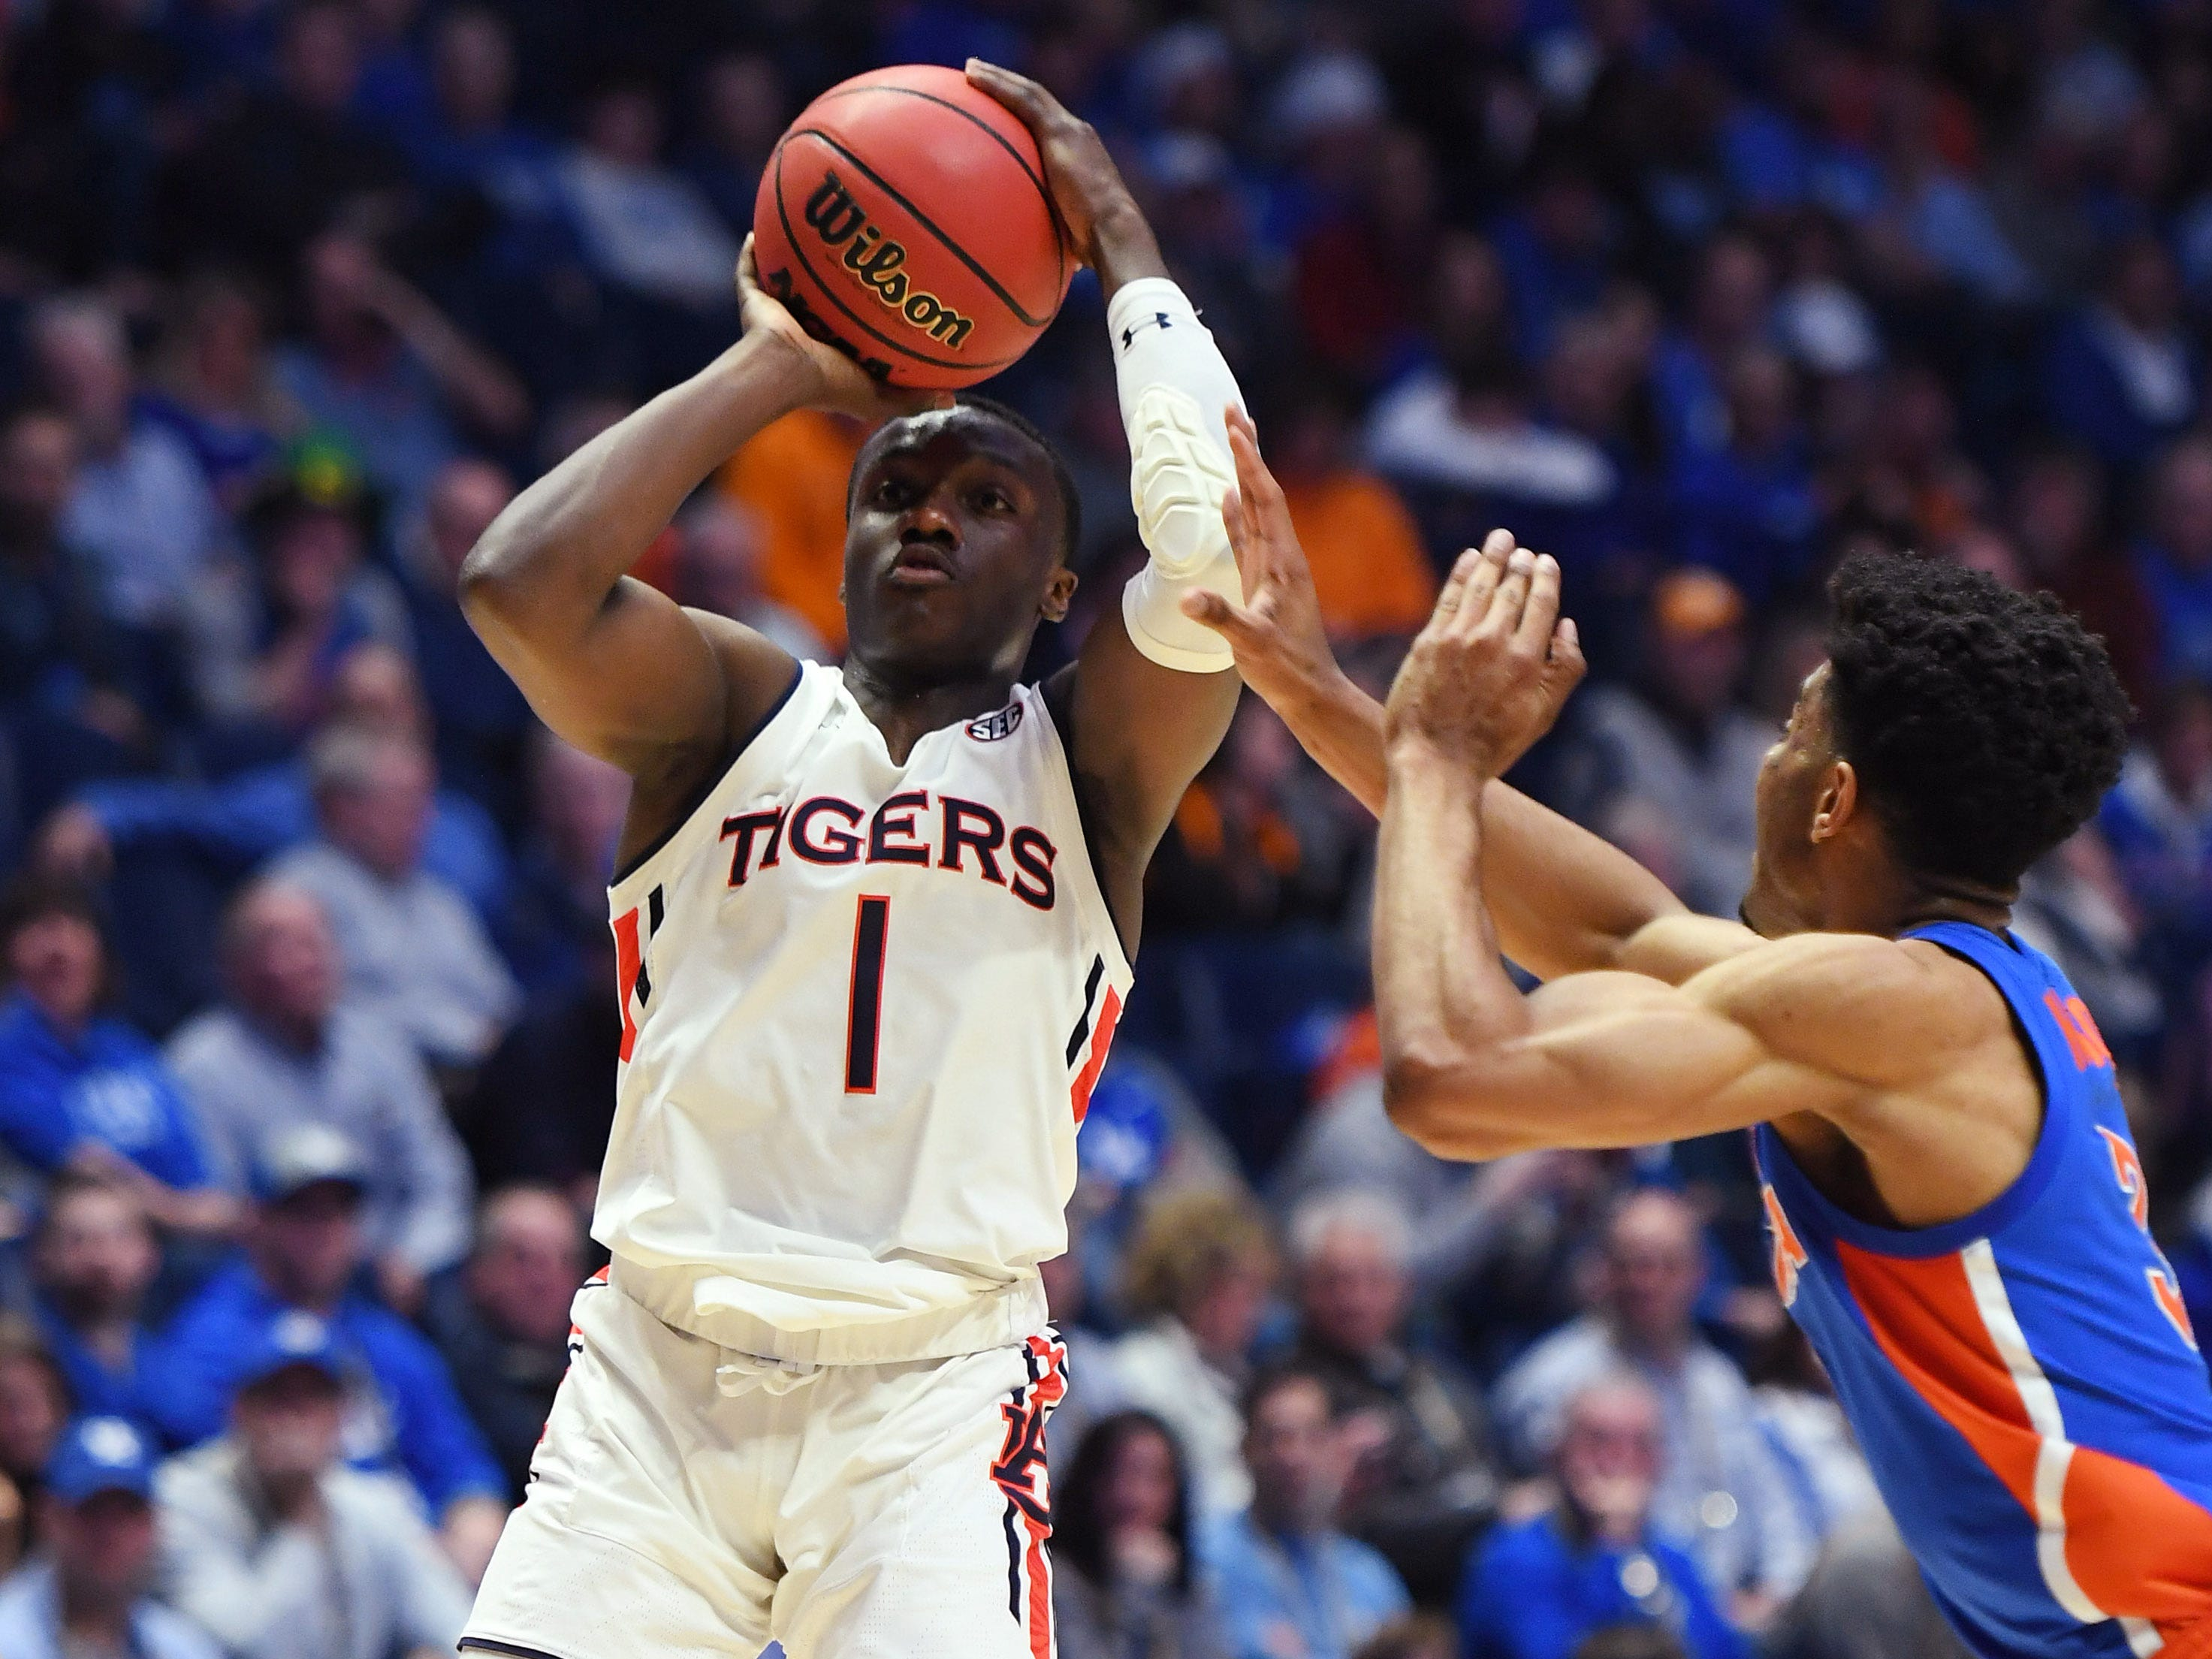 Mar 16, 2019; Nashville, TN, USA; Auburn Tigers guard Jared Harper (1) shoots the ball against the Florida Gators during the first half of the SEC conference tournament at Bridgestone Arena. Mandatory Credit: Christopher Hanewinckel-USA TODAY Sports